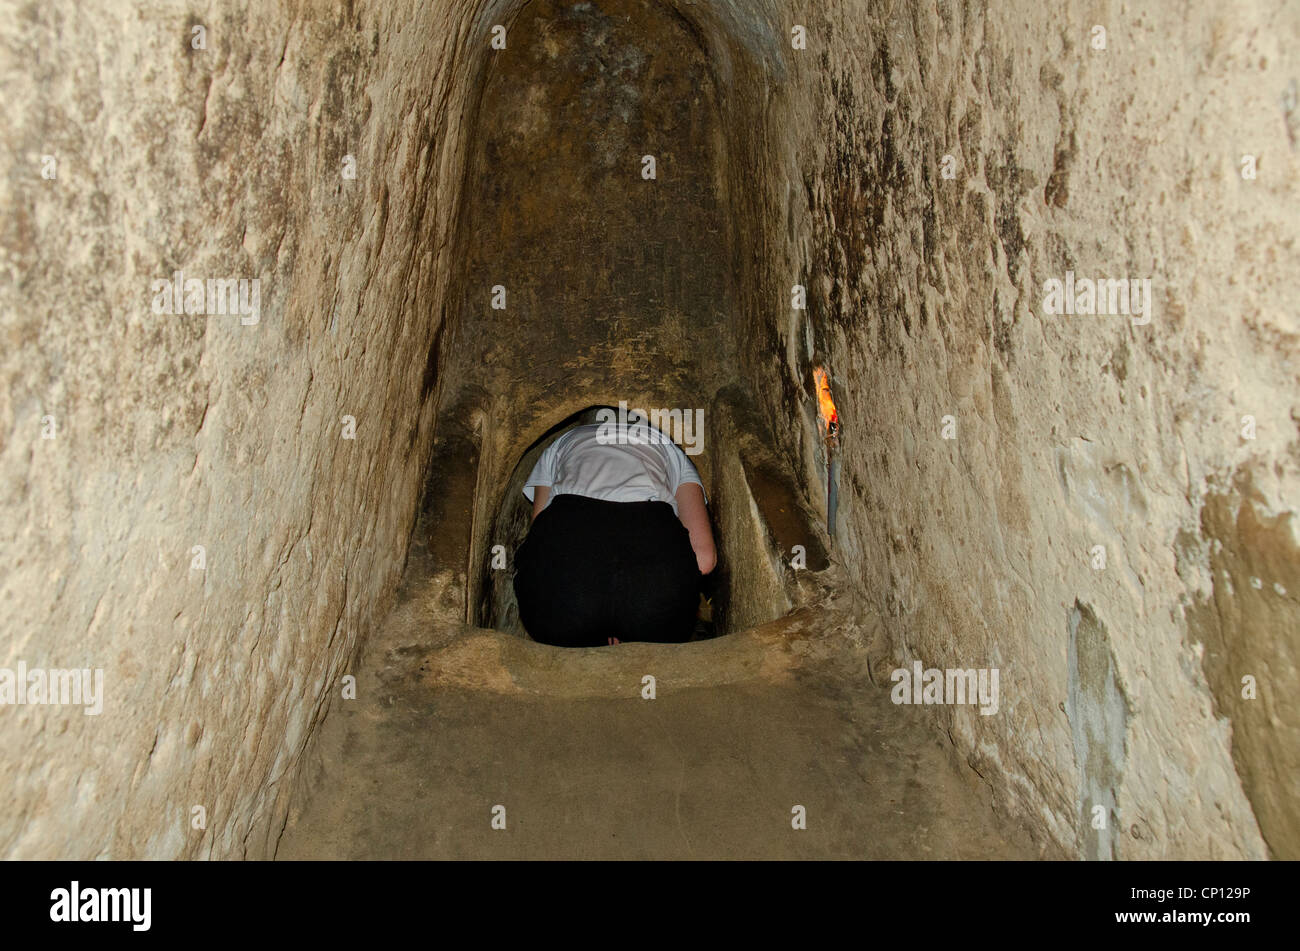 vietnam cu chi cu chi tunnels 200 km long tunnel complex used stock photo 47966962 alamy. Black Bedroom Furniture Sets. Home Design Ideas